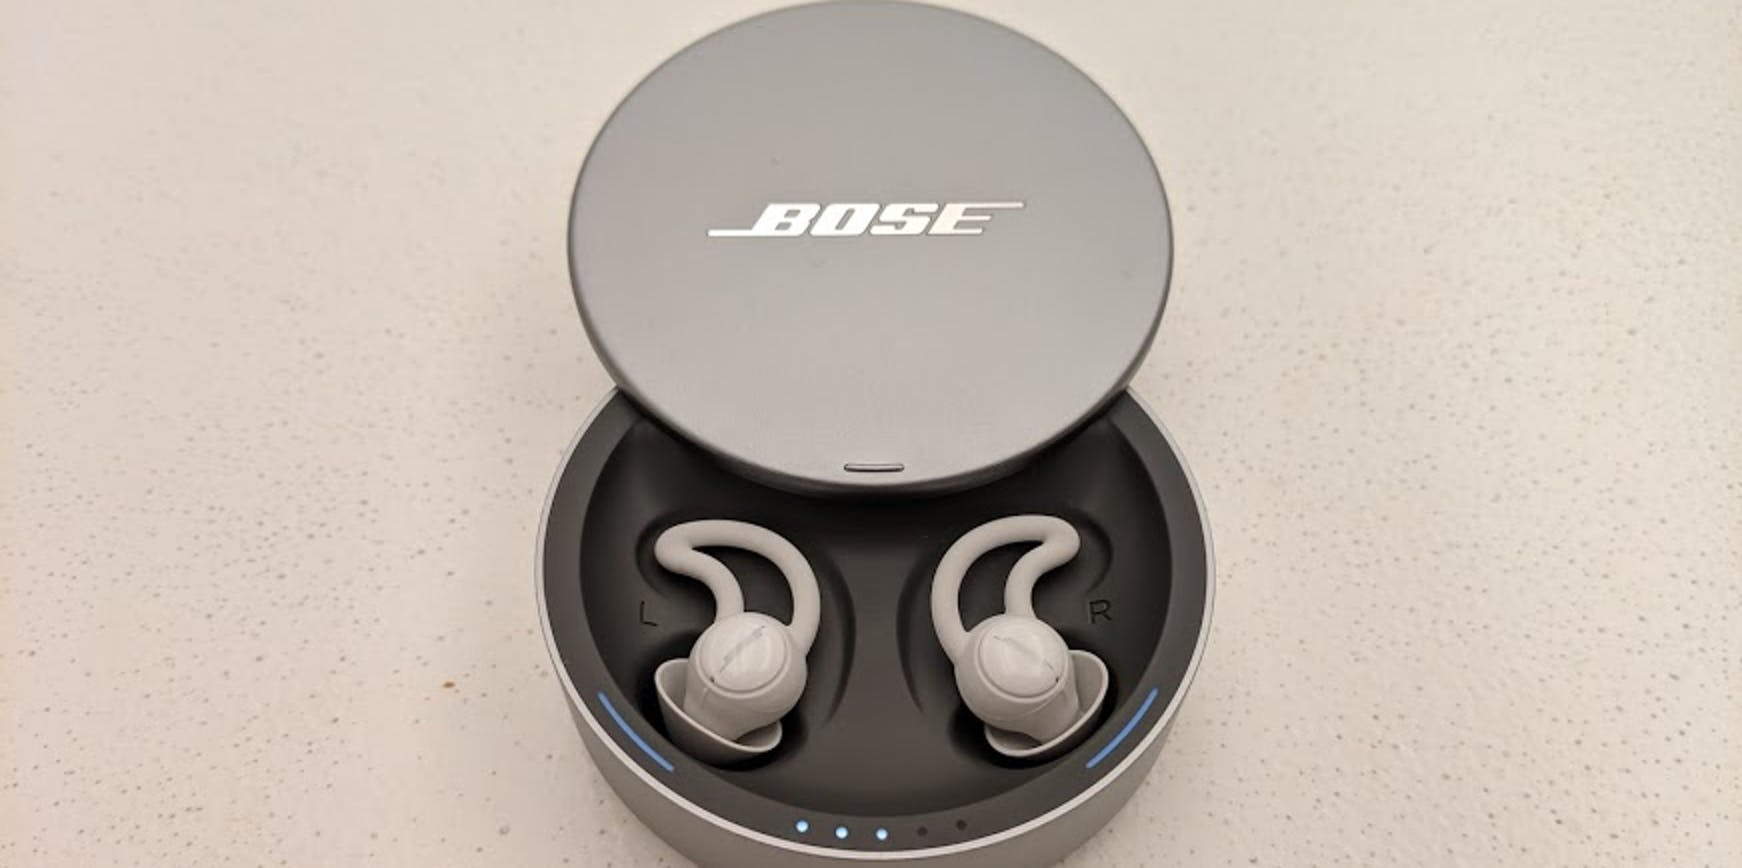 6e6a78cafd4 Sleep Tech: 4 Things You Only Learn by Using Bose's Sleep Buds for a Week |  Inverse